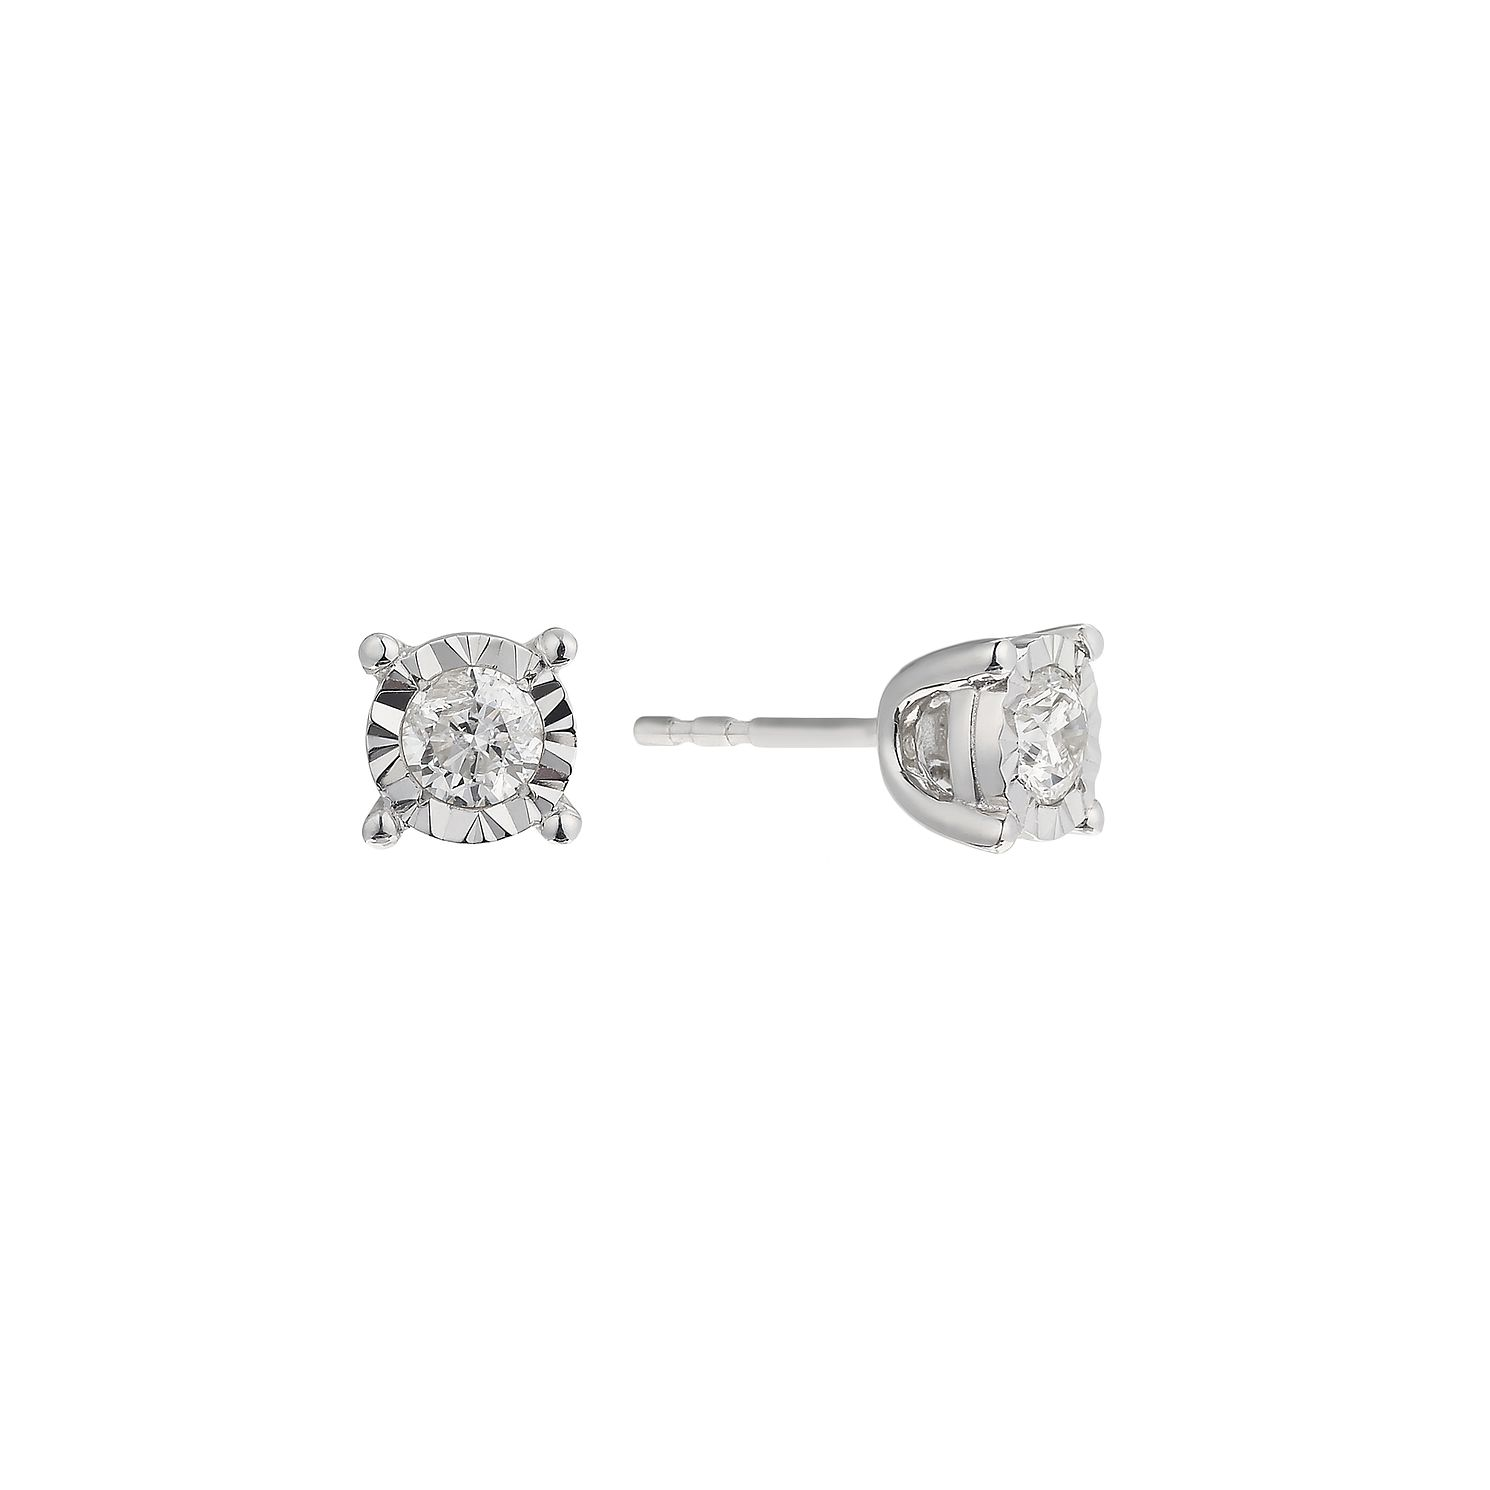 9ct White Gold 0.50ct Diamond Illusion Set Stud Earrings - Product number 2259893